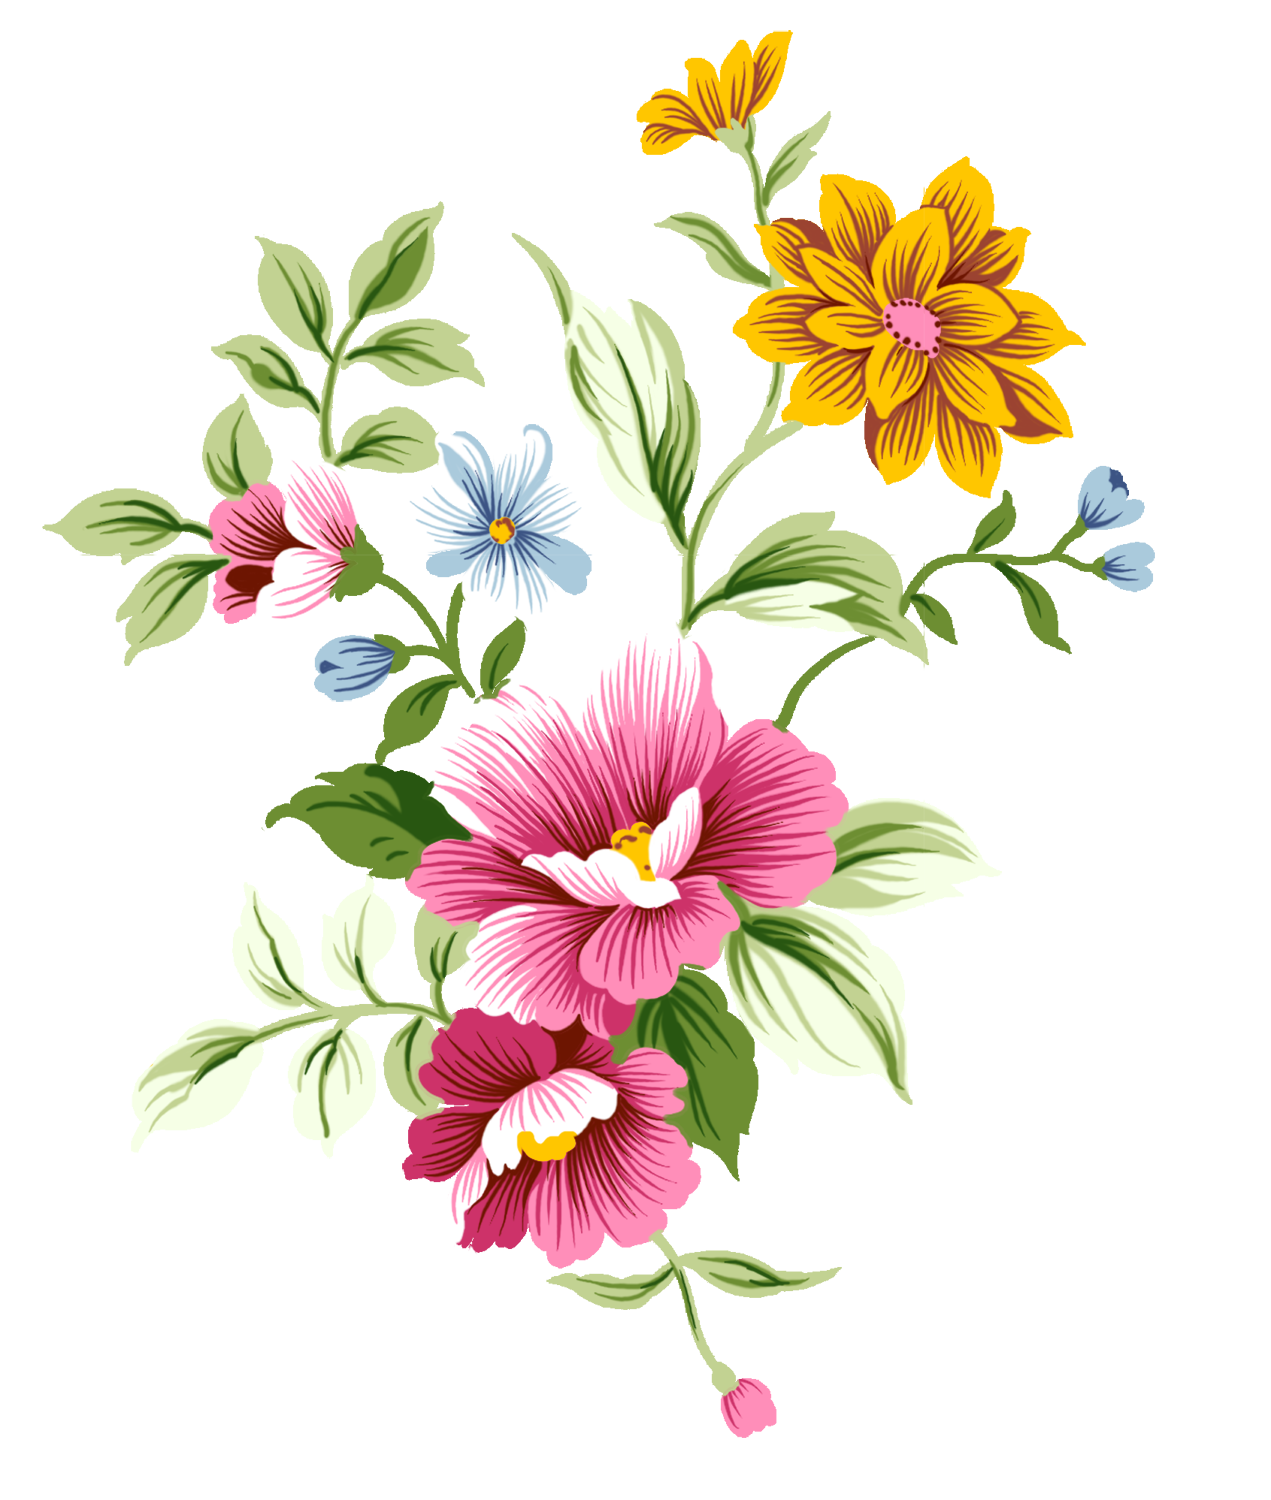 syedimran flower png Pretty flower art, Flower art